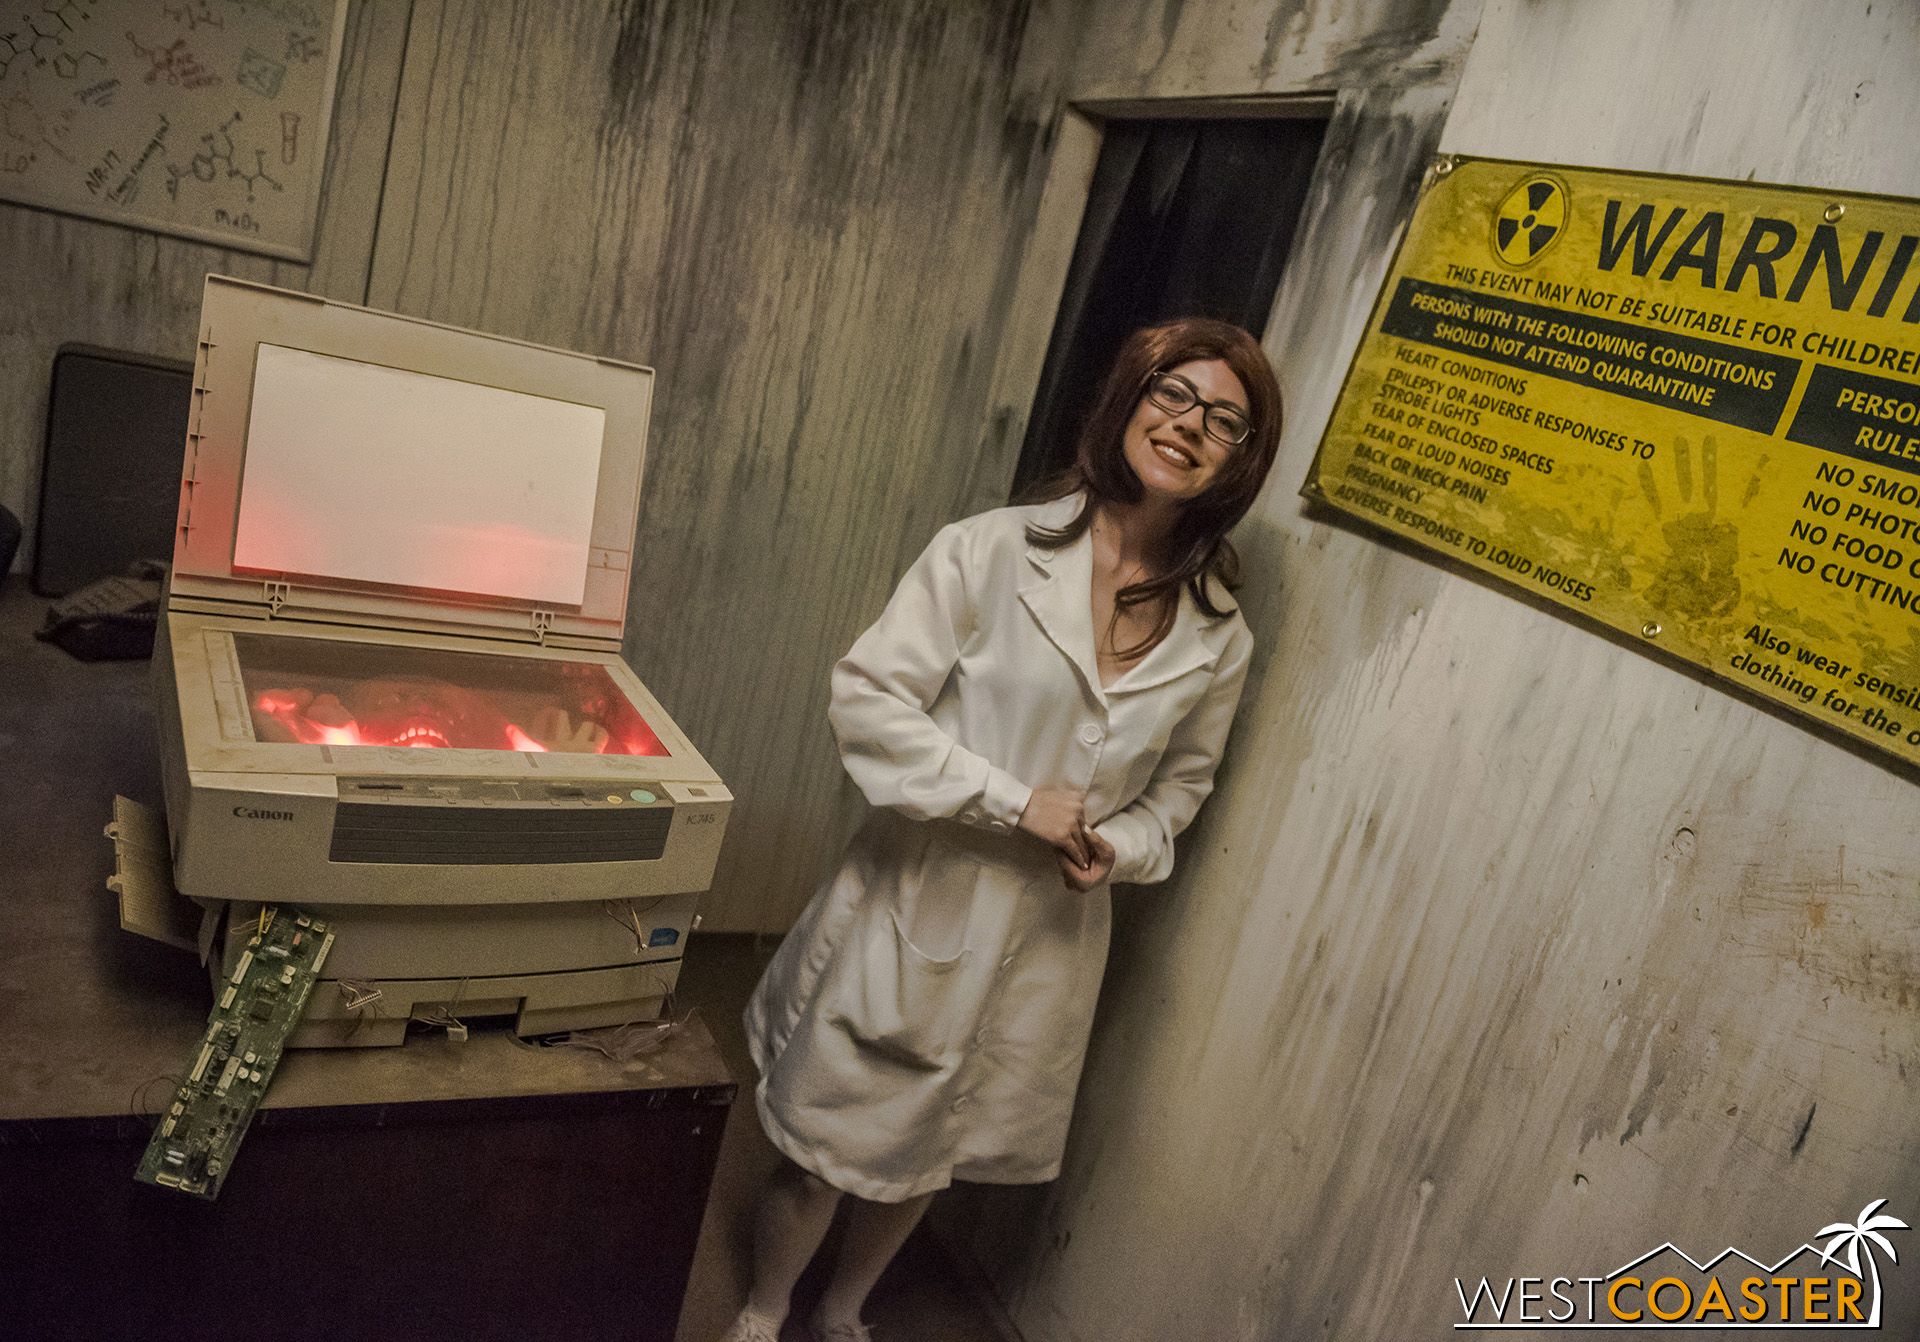 Welcome to the quarantine zone! This cheerful official explains the situation and the rules, then sends guests off to their certain doom.